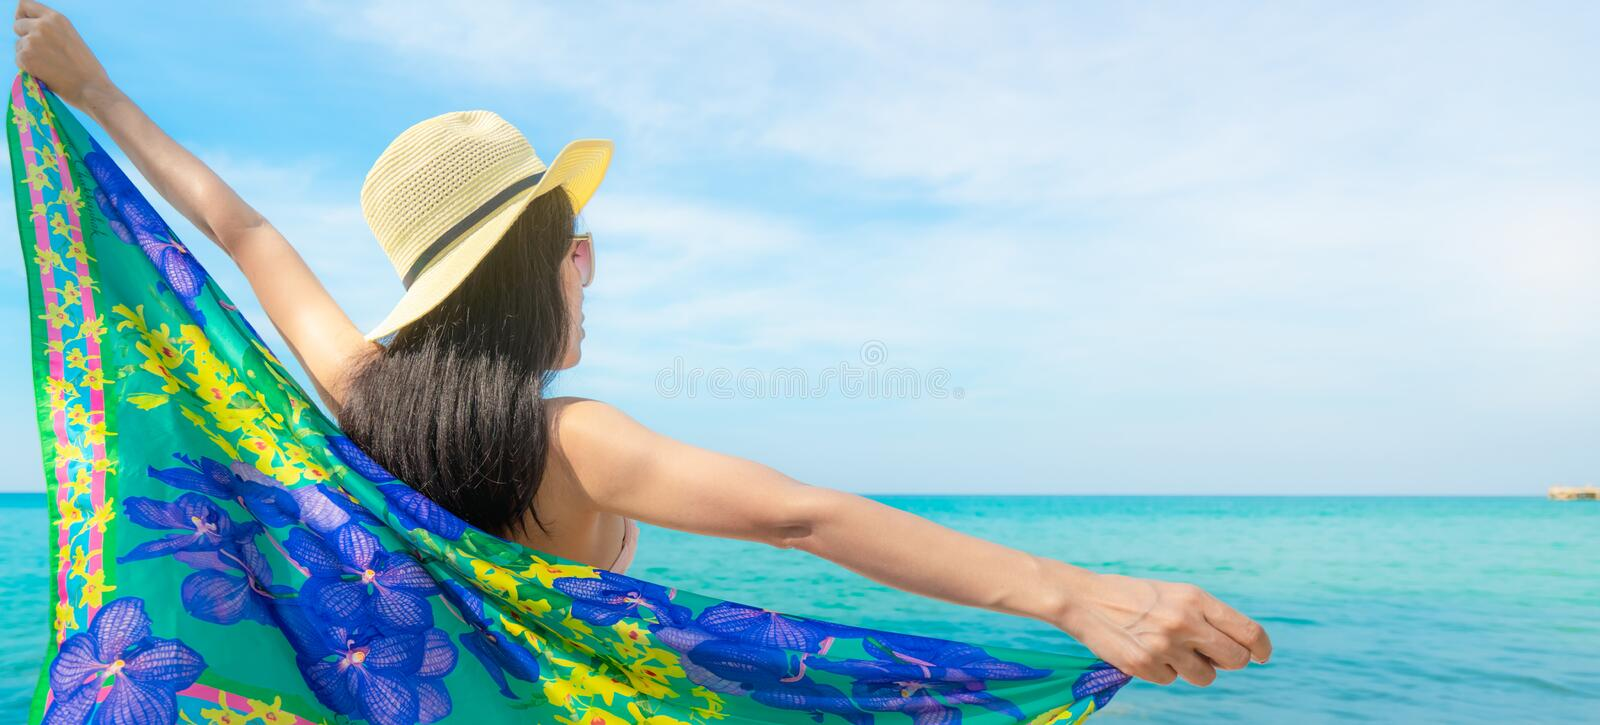 Back view of Asian woman wear swimsuit and opened arms at tropical beach on sunny day with beautiful blue sky and white clouds. Woman travel on summer vacation royalty free stock photography